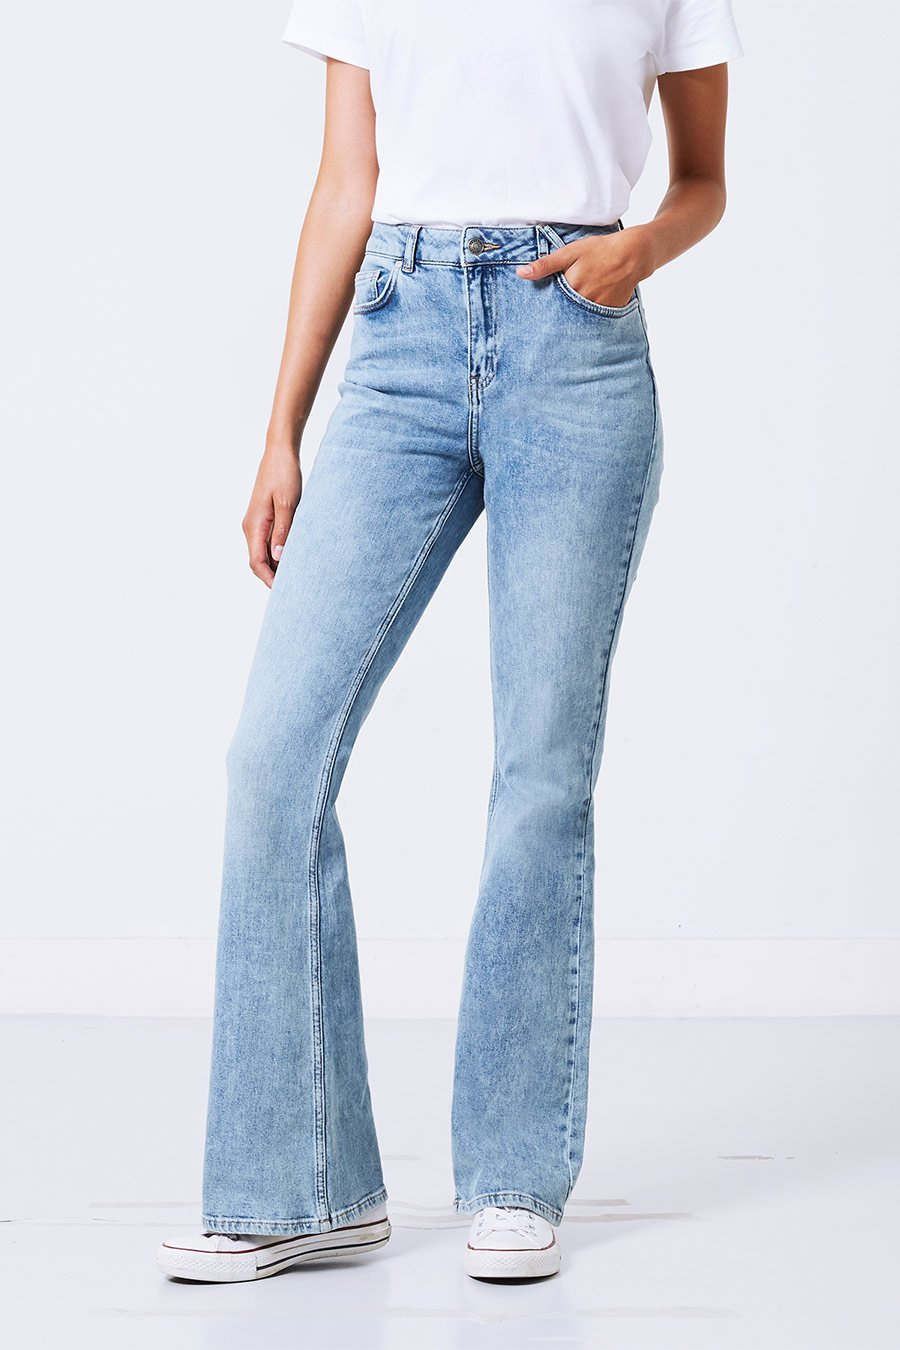 peggy women Jeans